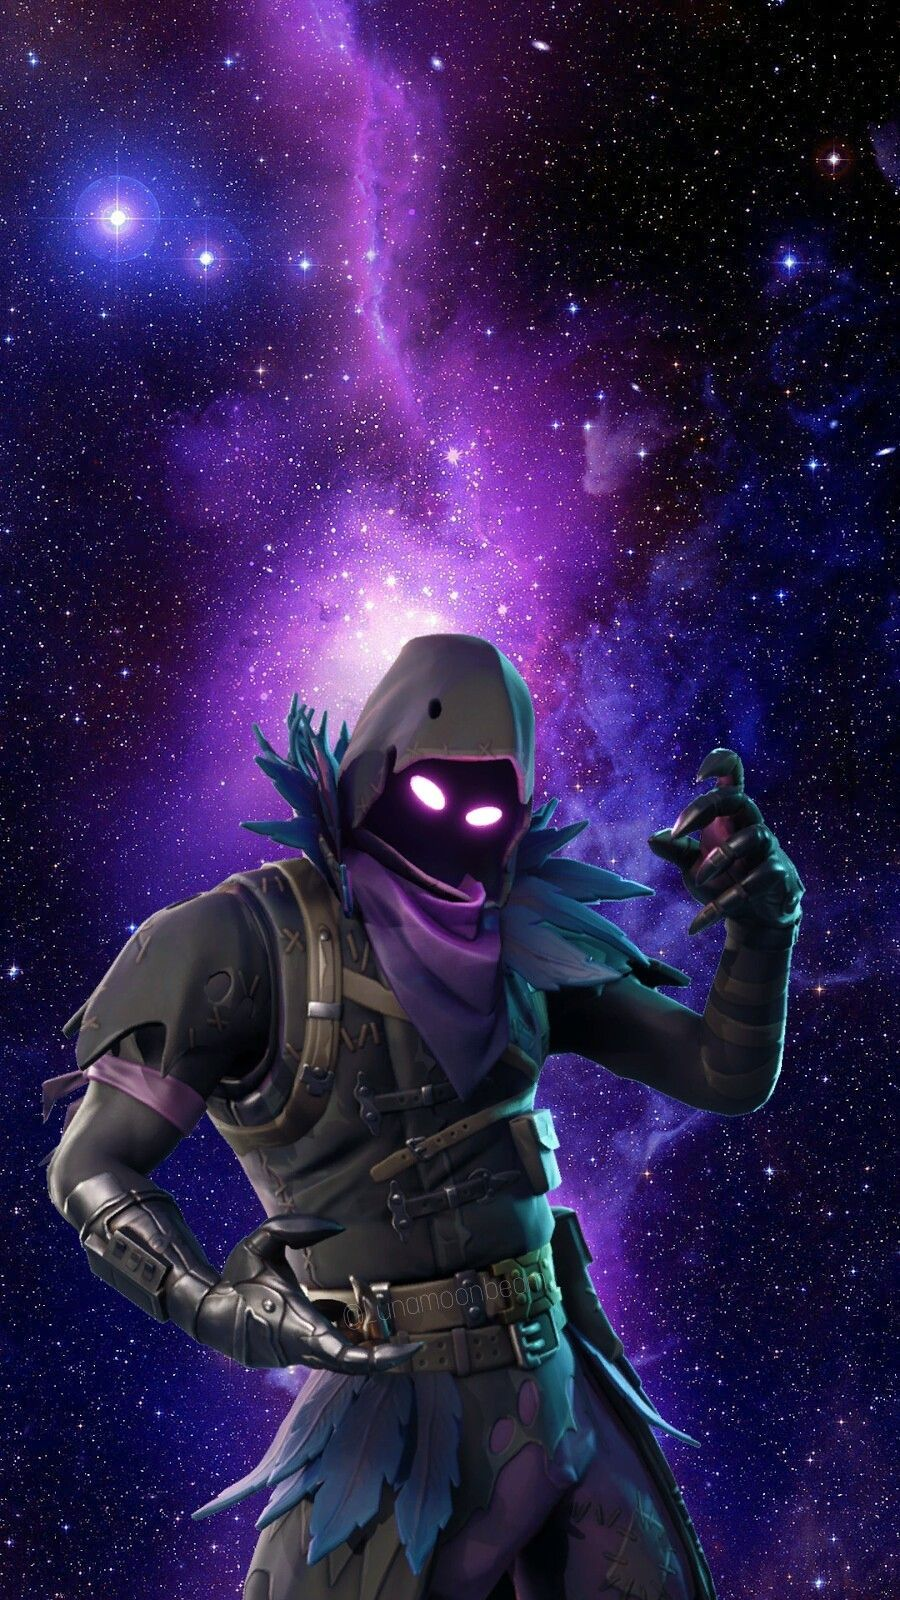 Hd Fortnite Wallpapers Android Art Wallpaper Pictures Iphone Wallpaper Images